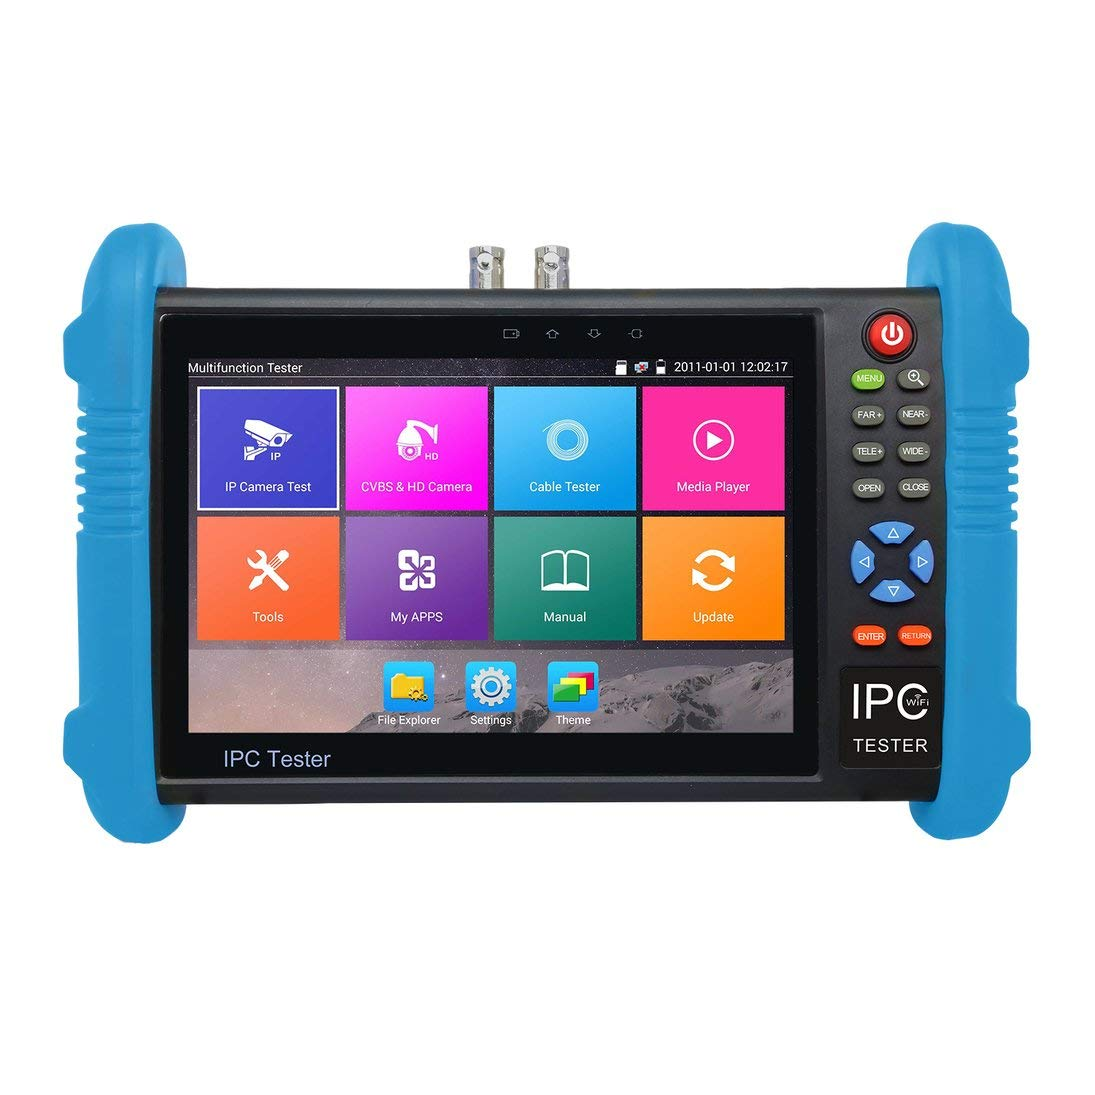 Baynne 7 inch IPS Touch Screen H.265 4K IPC-9800 Plus IP Camera Tester CCTV CVBS Analog Tester Built in WiFi Dual Window Tester